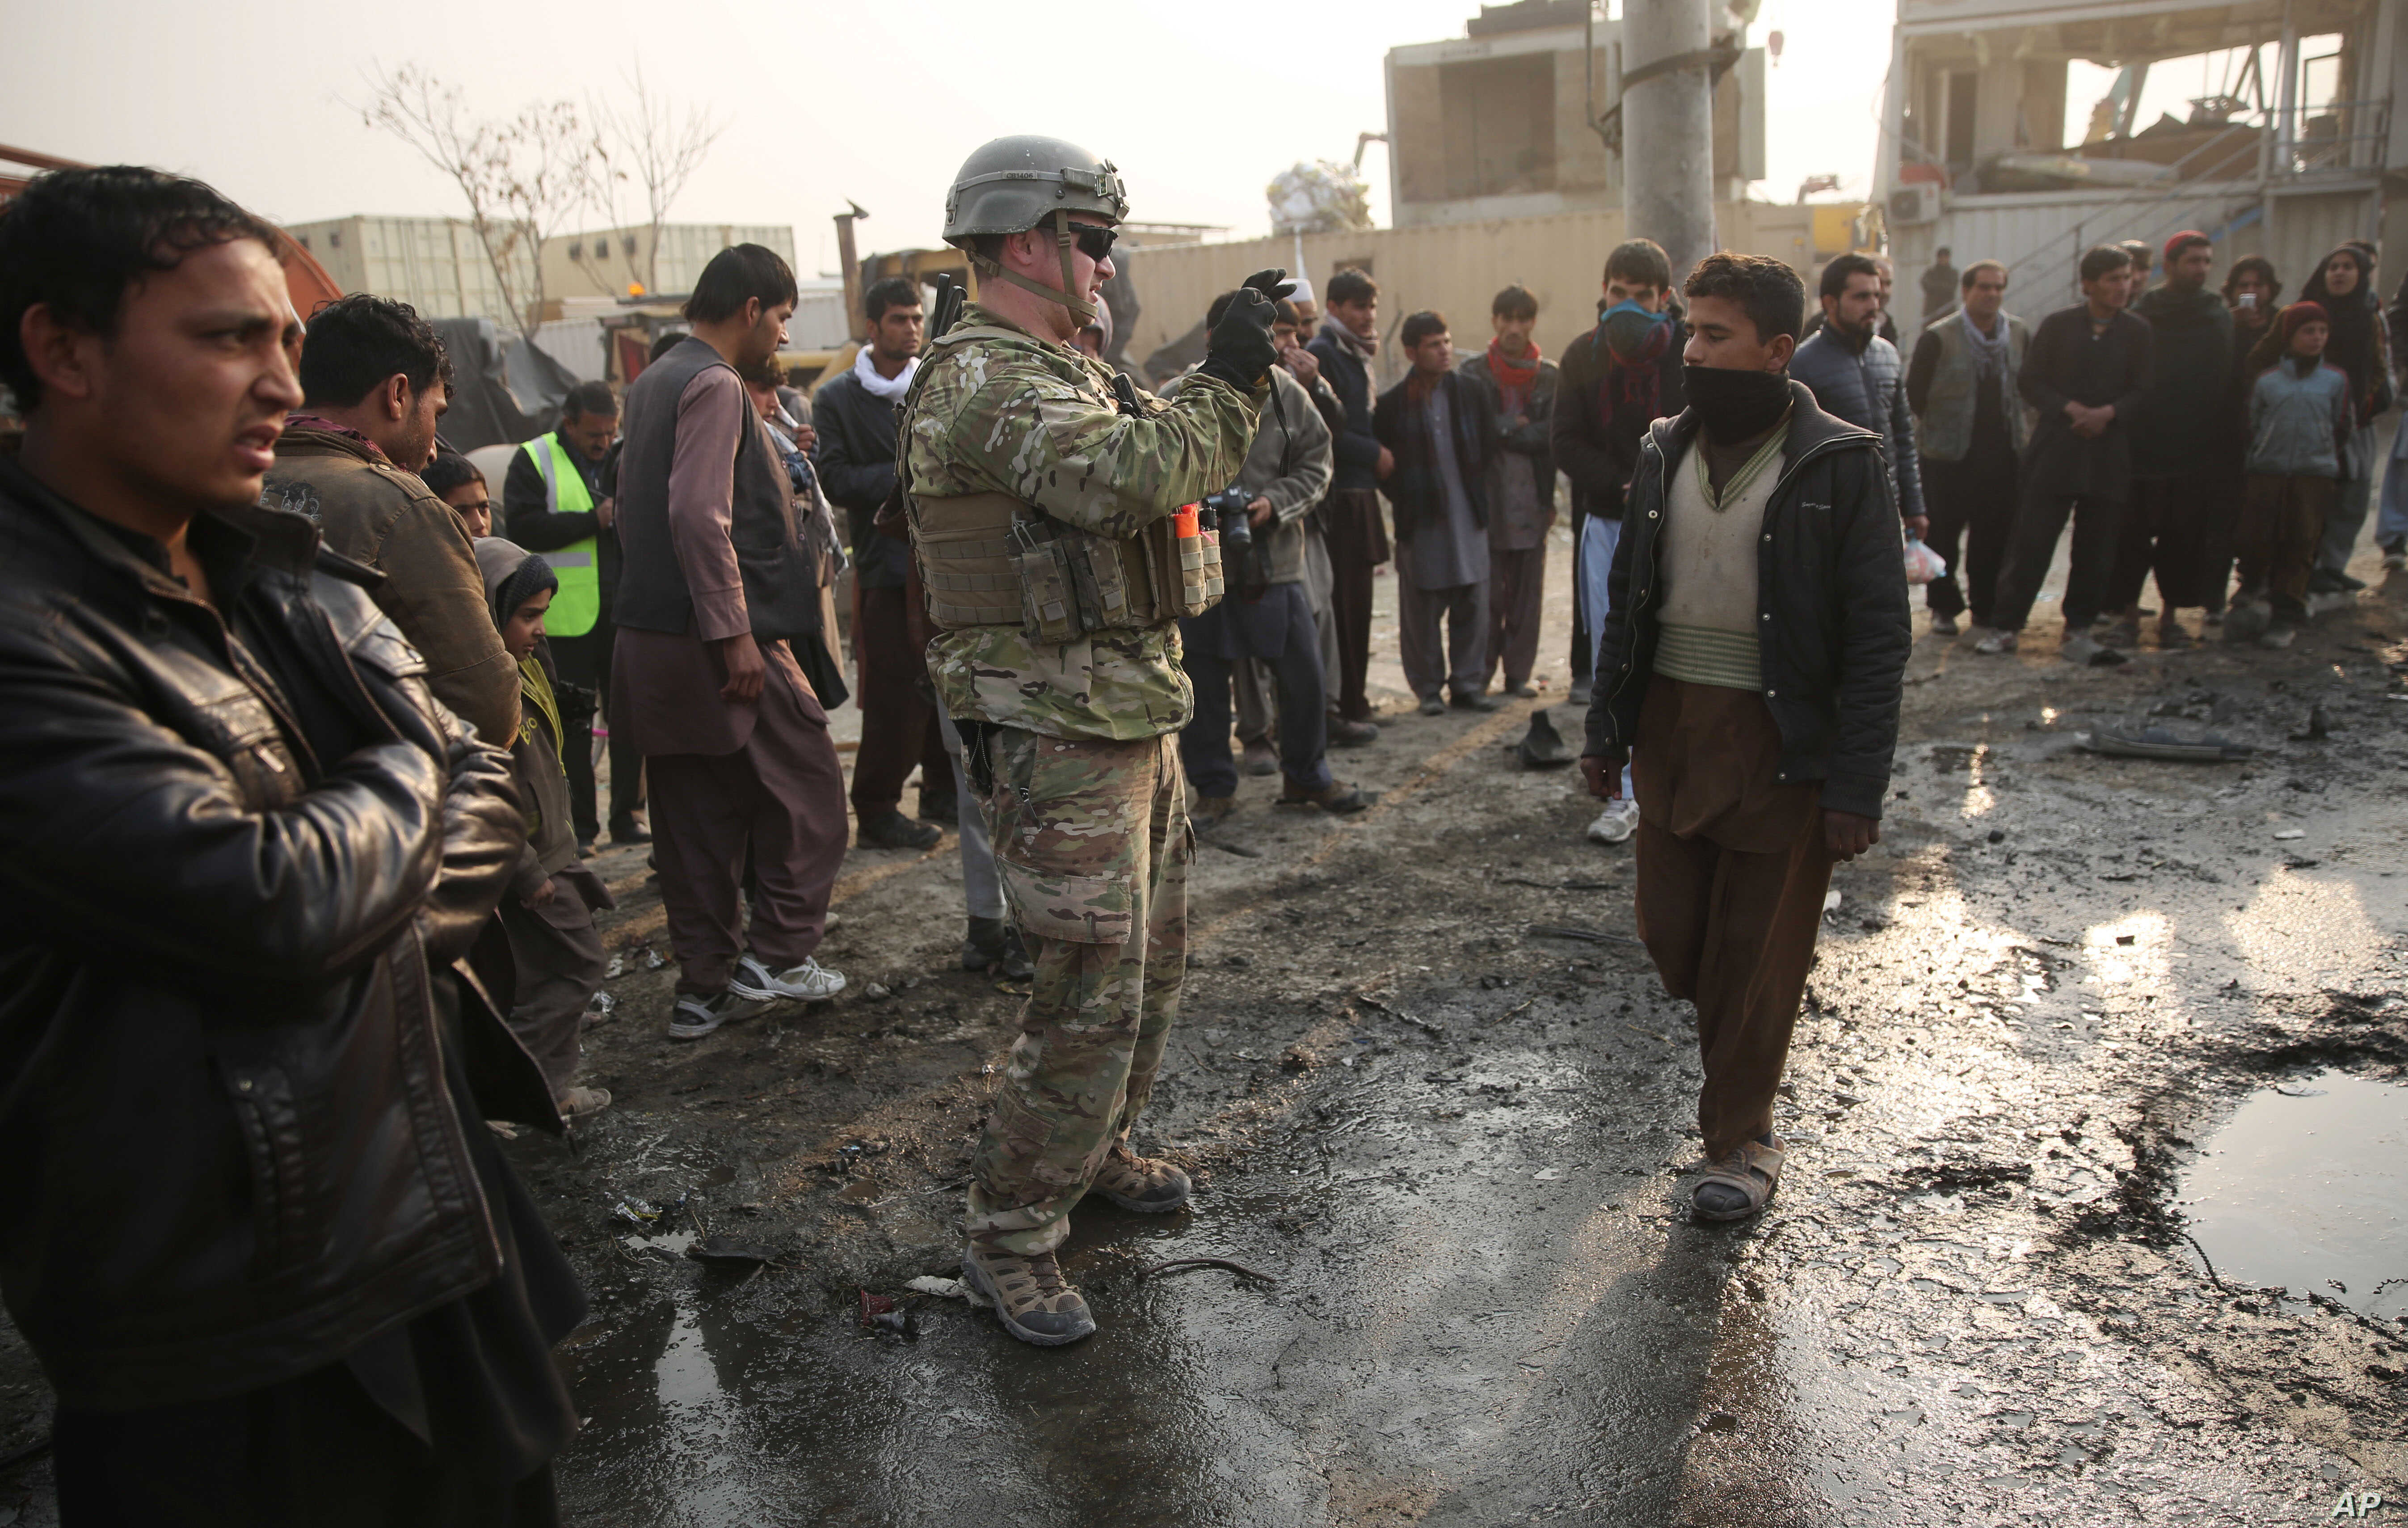 A U.S. soldier, center, takes a photo at the site of a suicide car bomb attack near the headquarters of the European police training mission in Kabul, Afghanistan, Jan. 5, 2015.